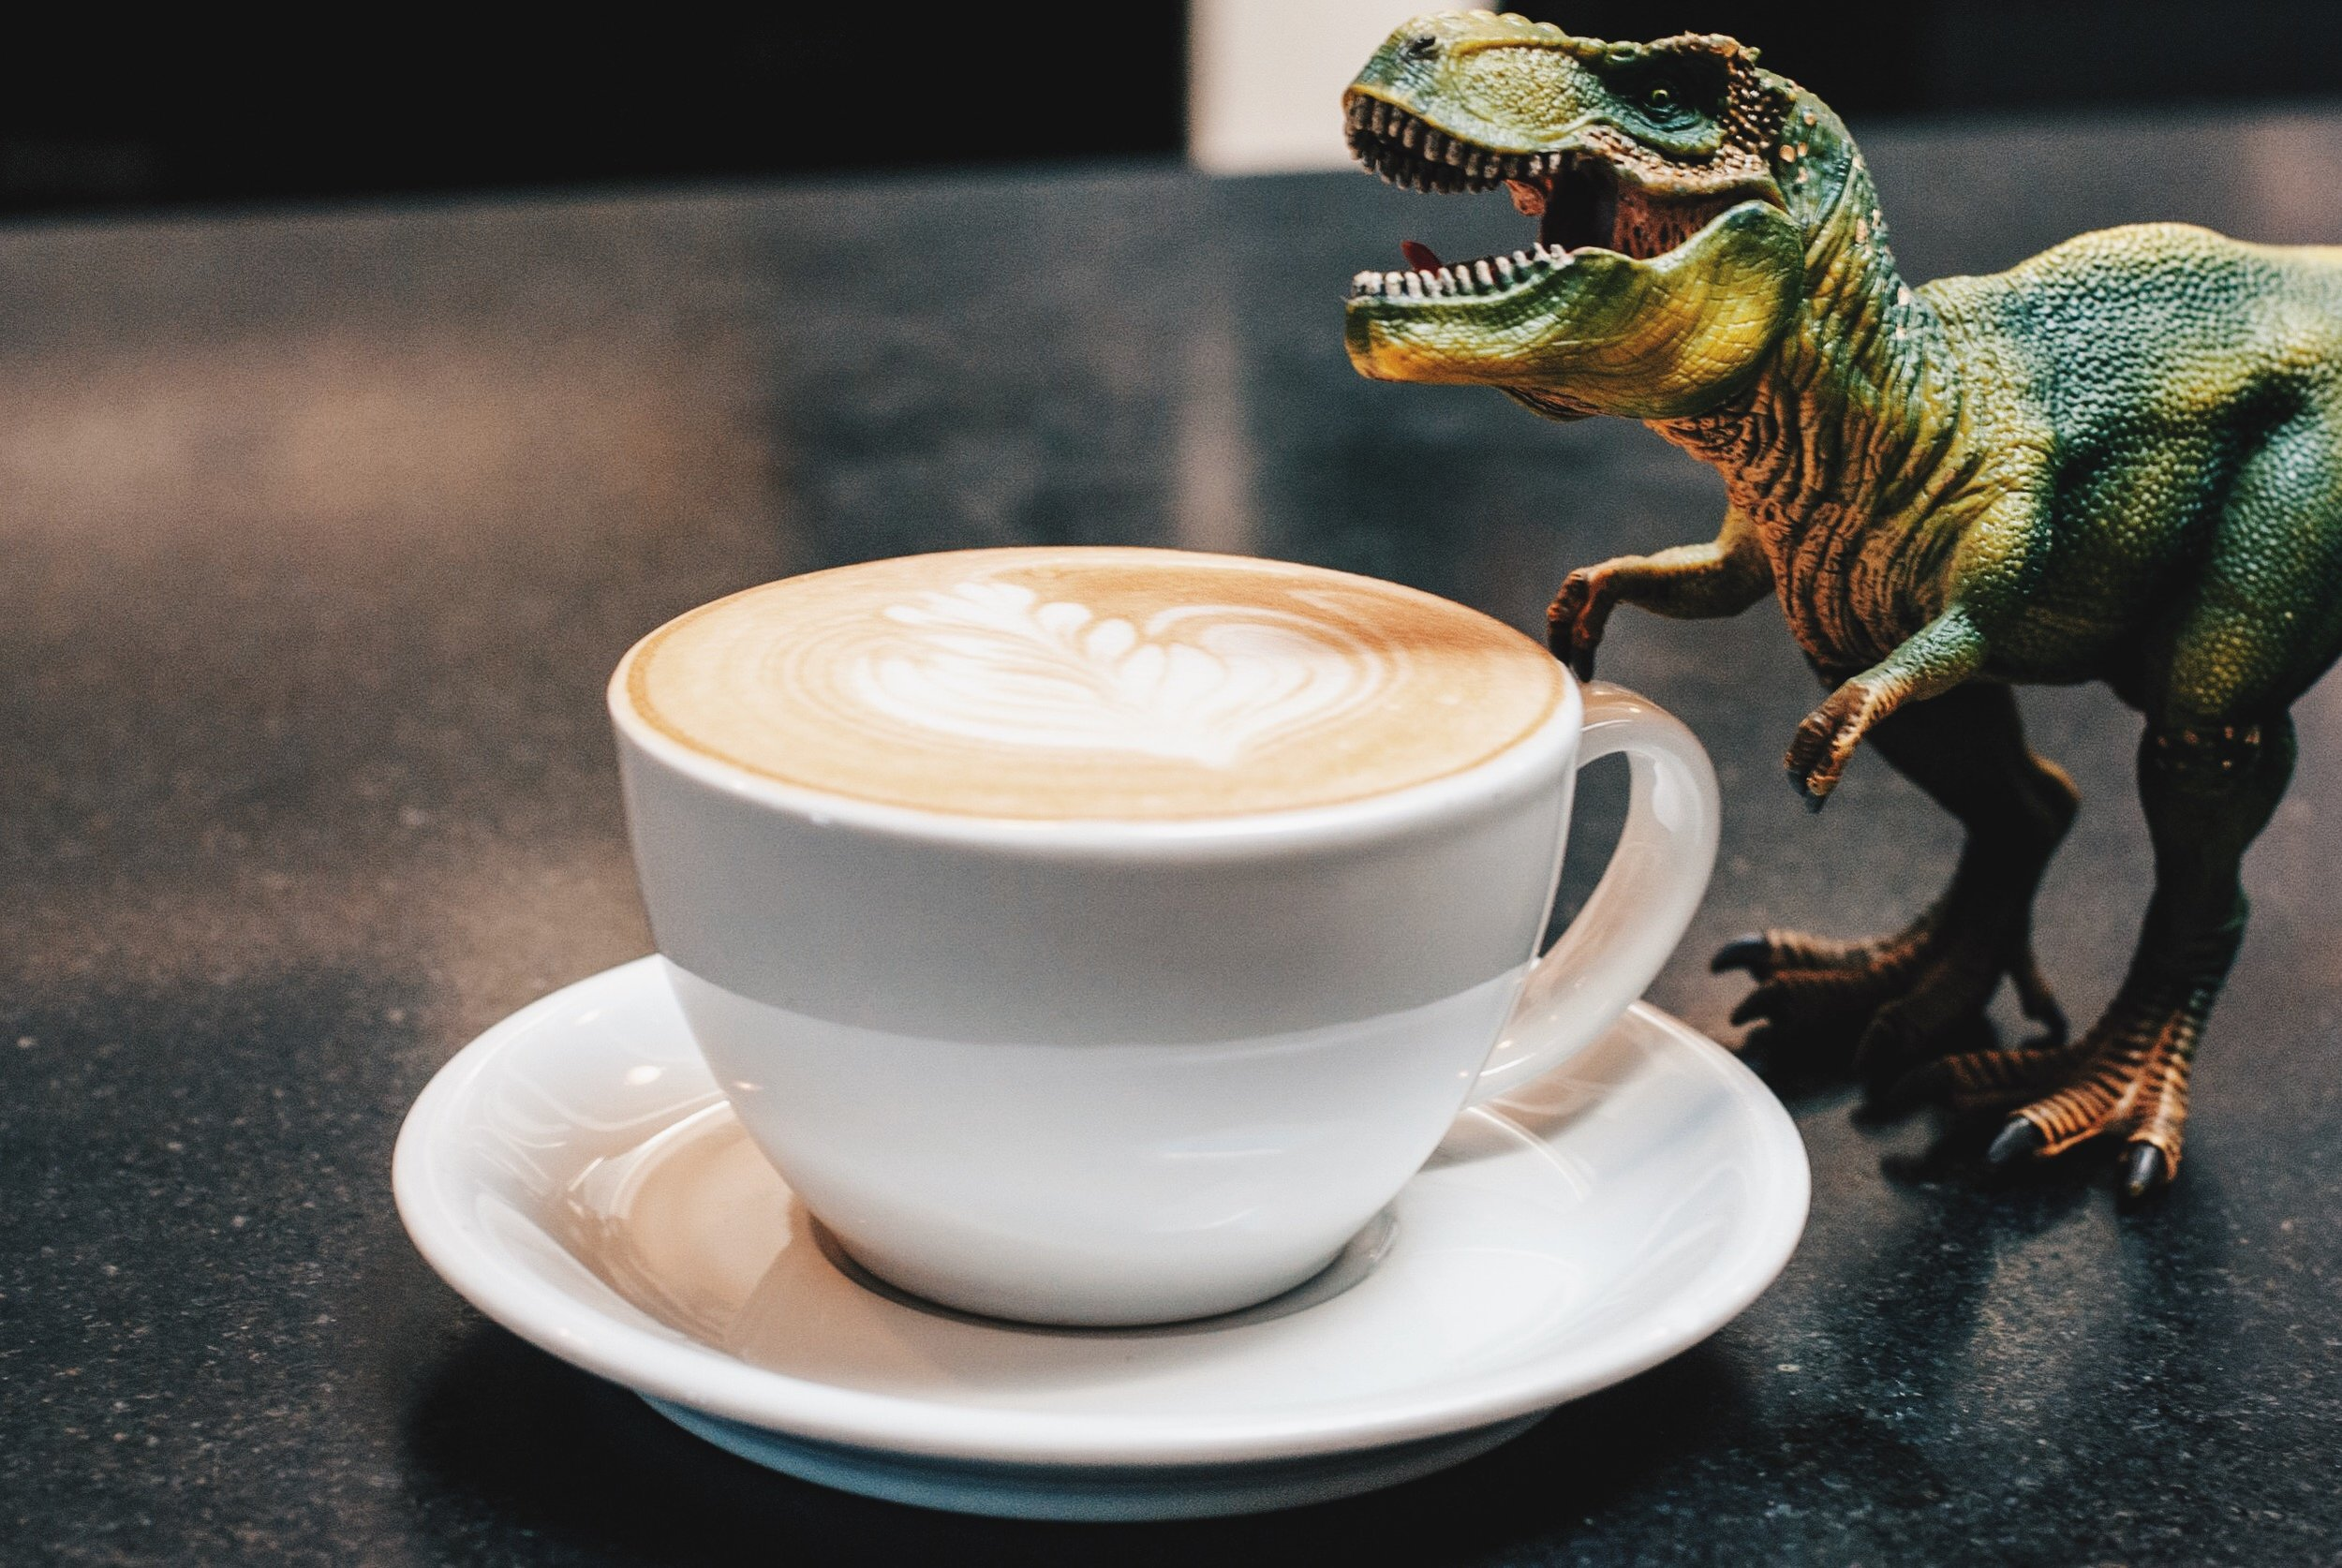 I mean... sometimes Dinos need coffee too, right? Caffe Luxxe, Santa Monica, CA